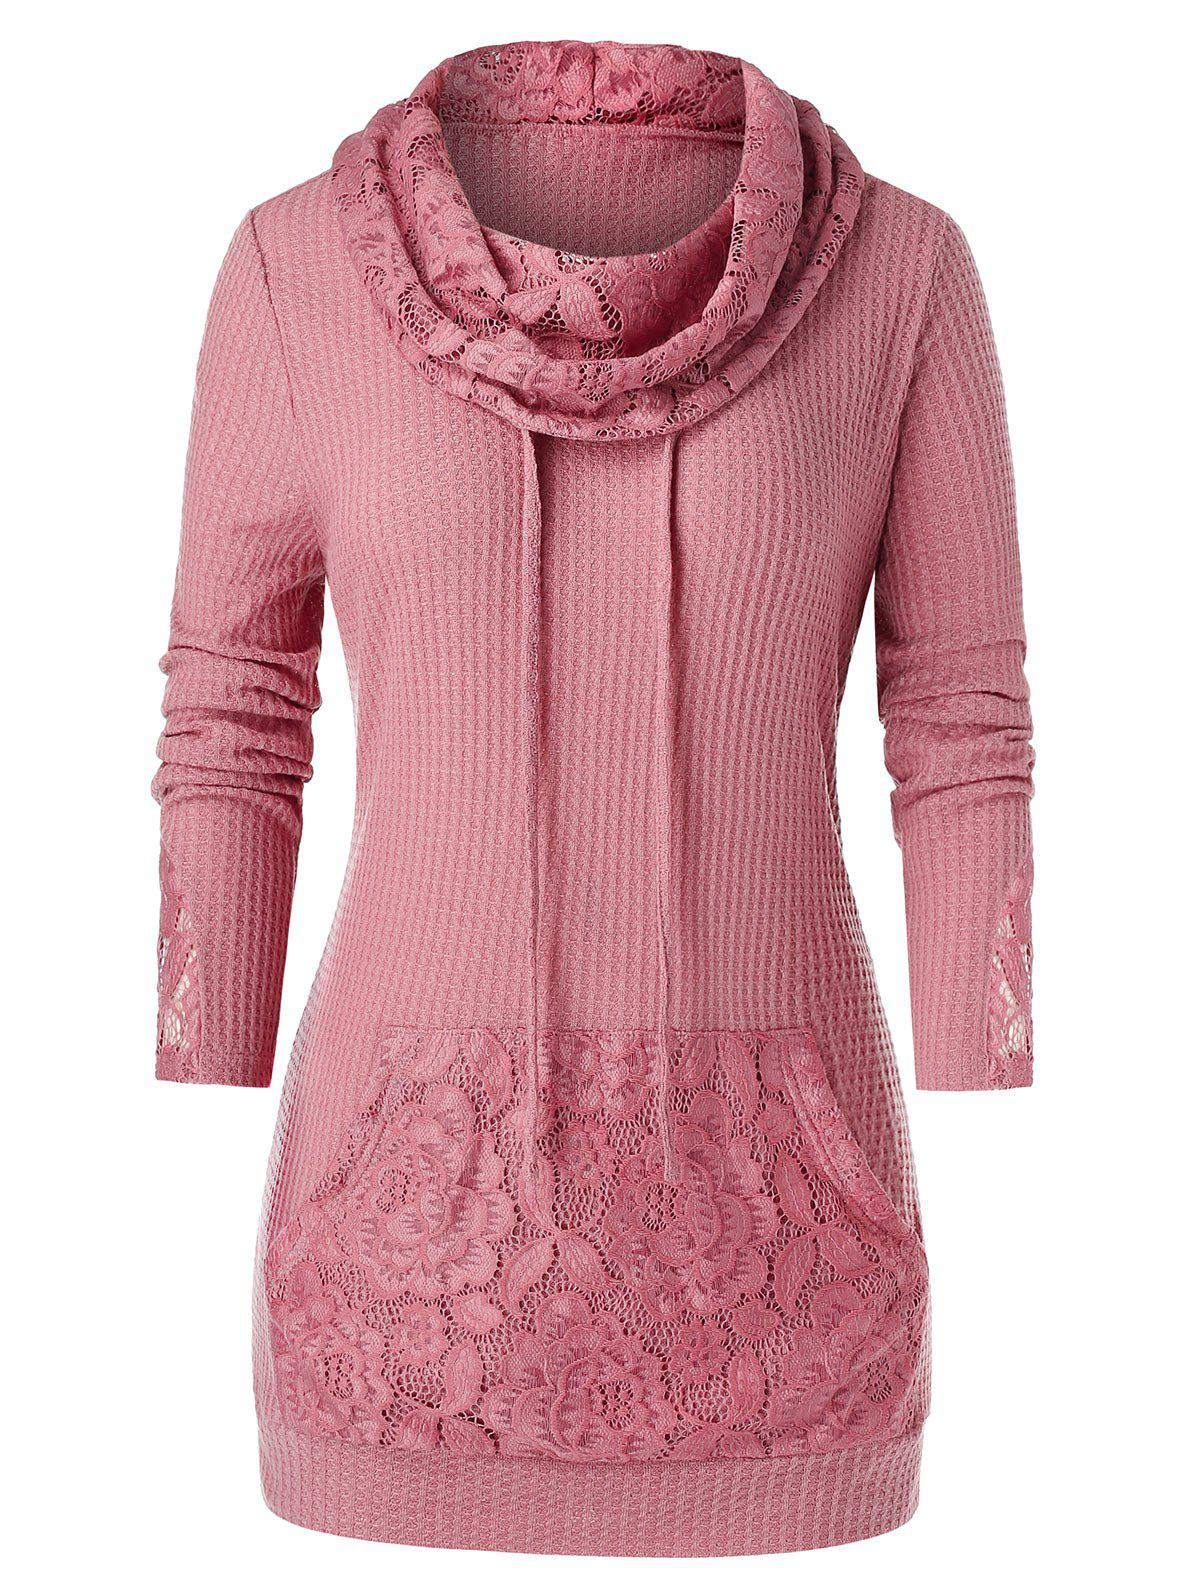 Plus Size Lace Panel Cowl Neck Drawstring Pocket Sweater - LIPSTICK PINK L